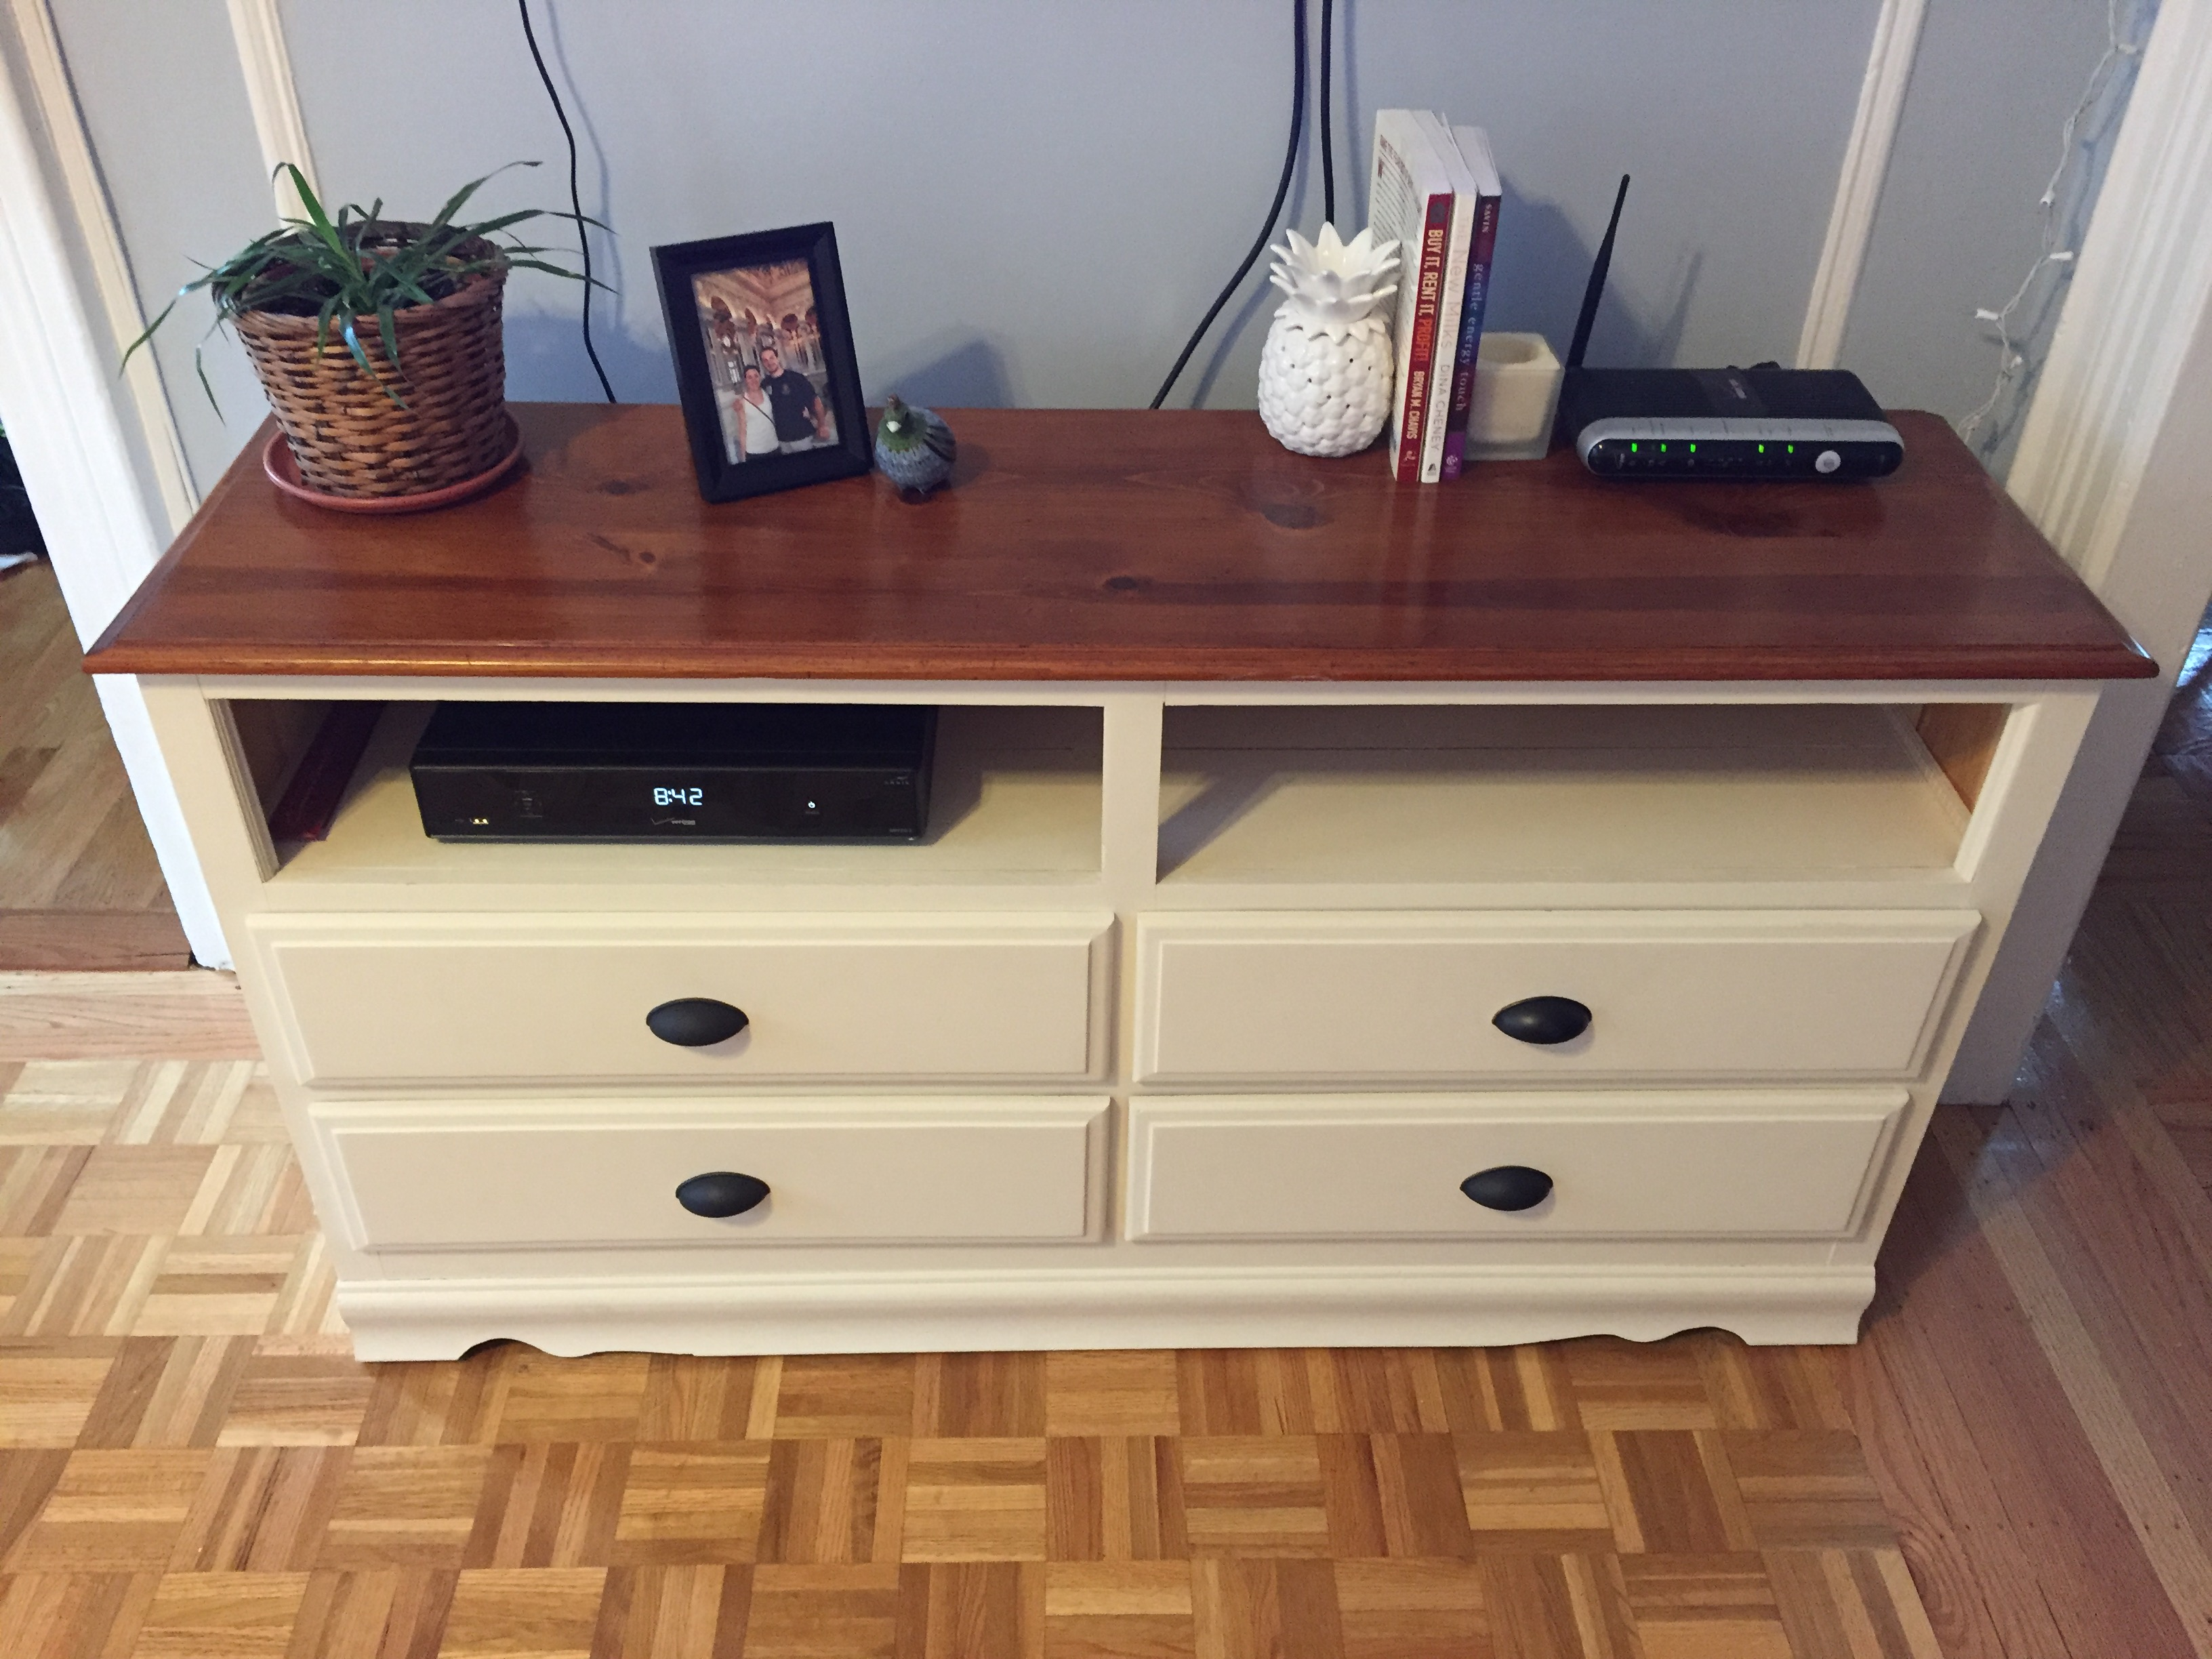 Picture of: Bedroom Dresser with TV Mount Design